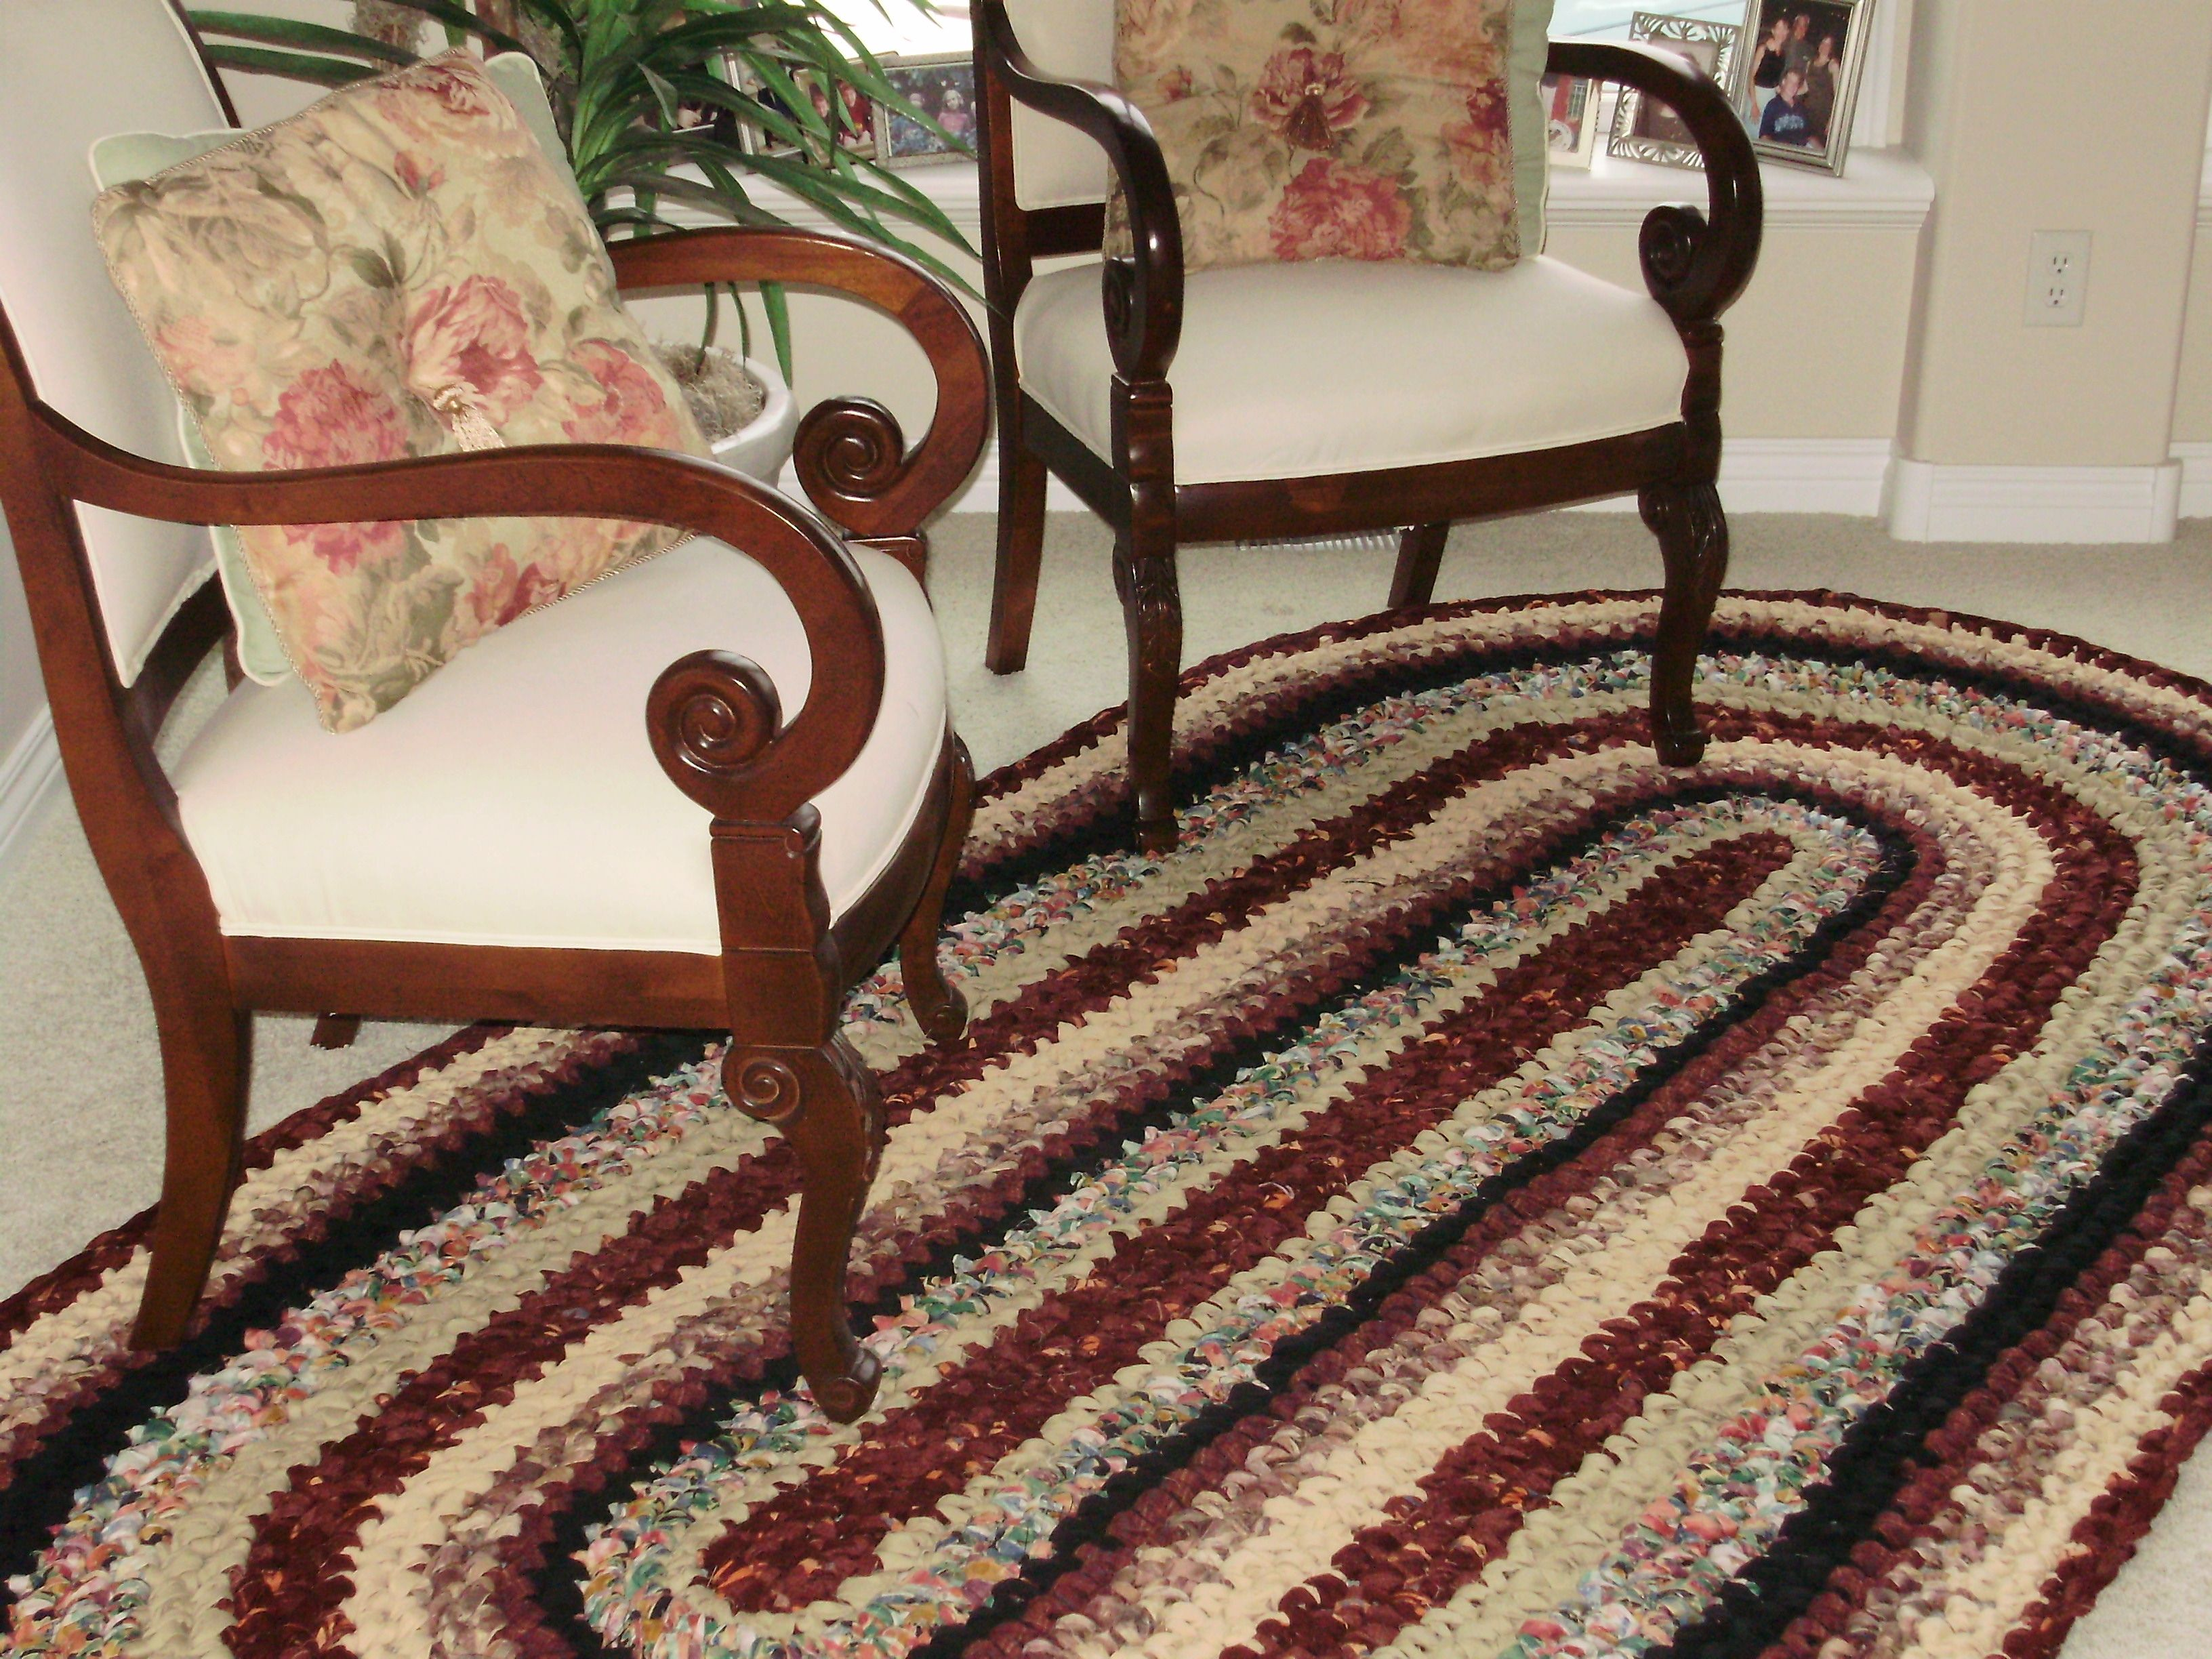 Crocheted rag rug - must have